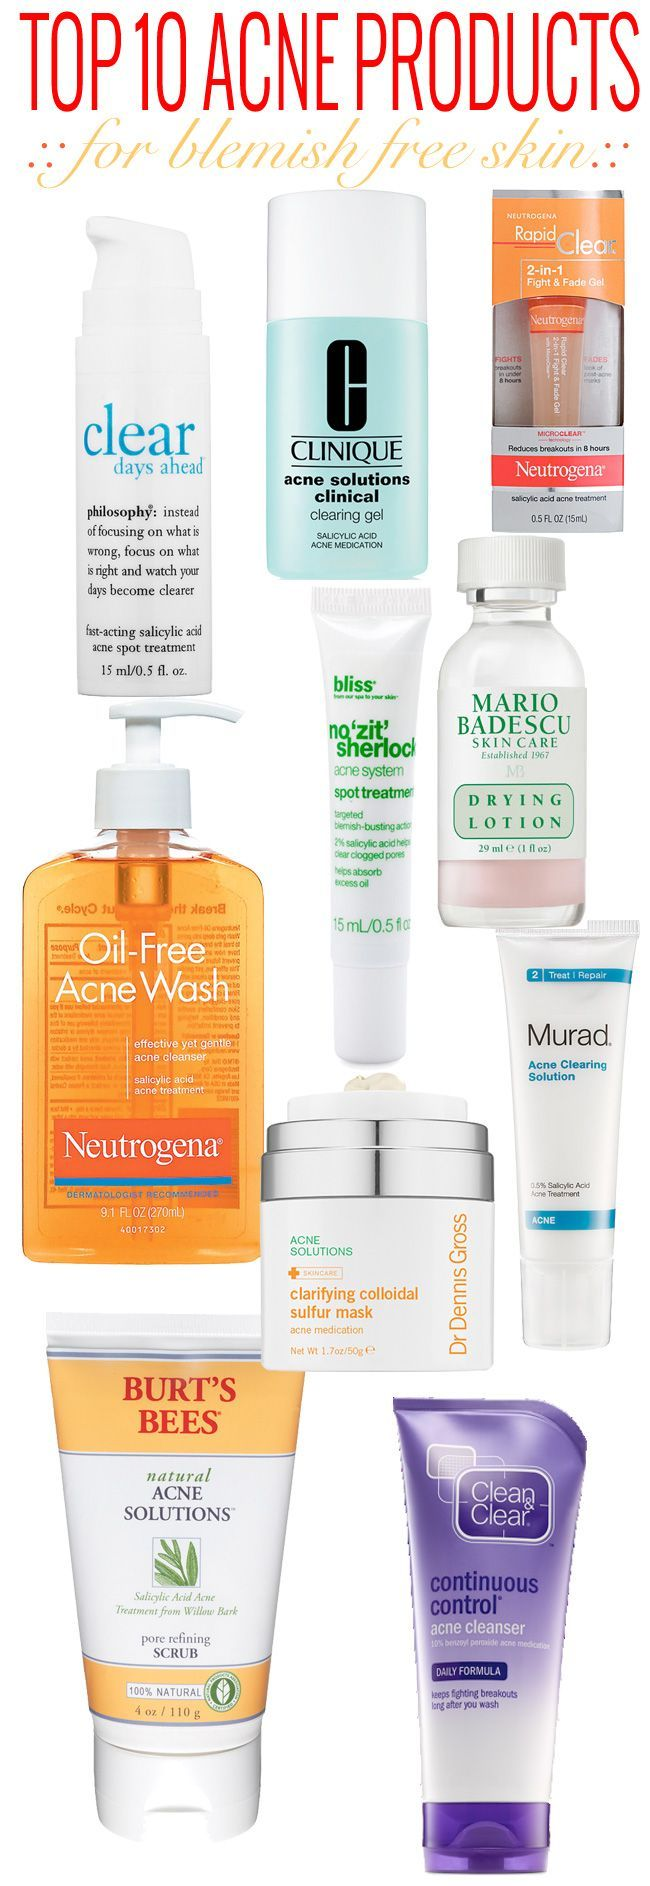 Top 10 Acne Products. - #acne #products #Top #skintreatments